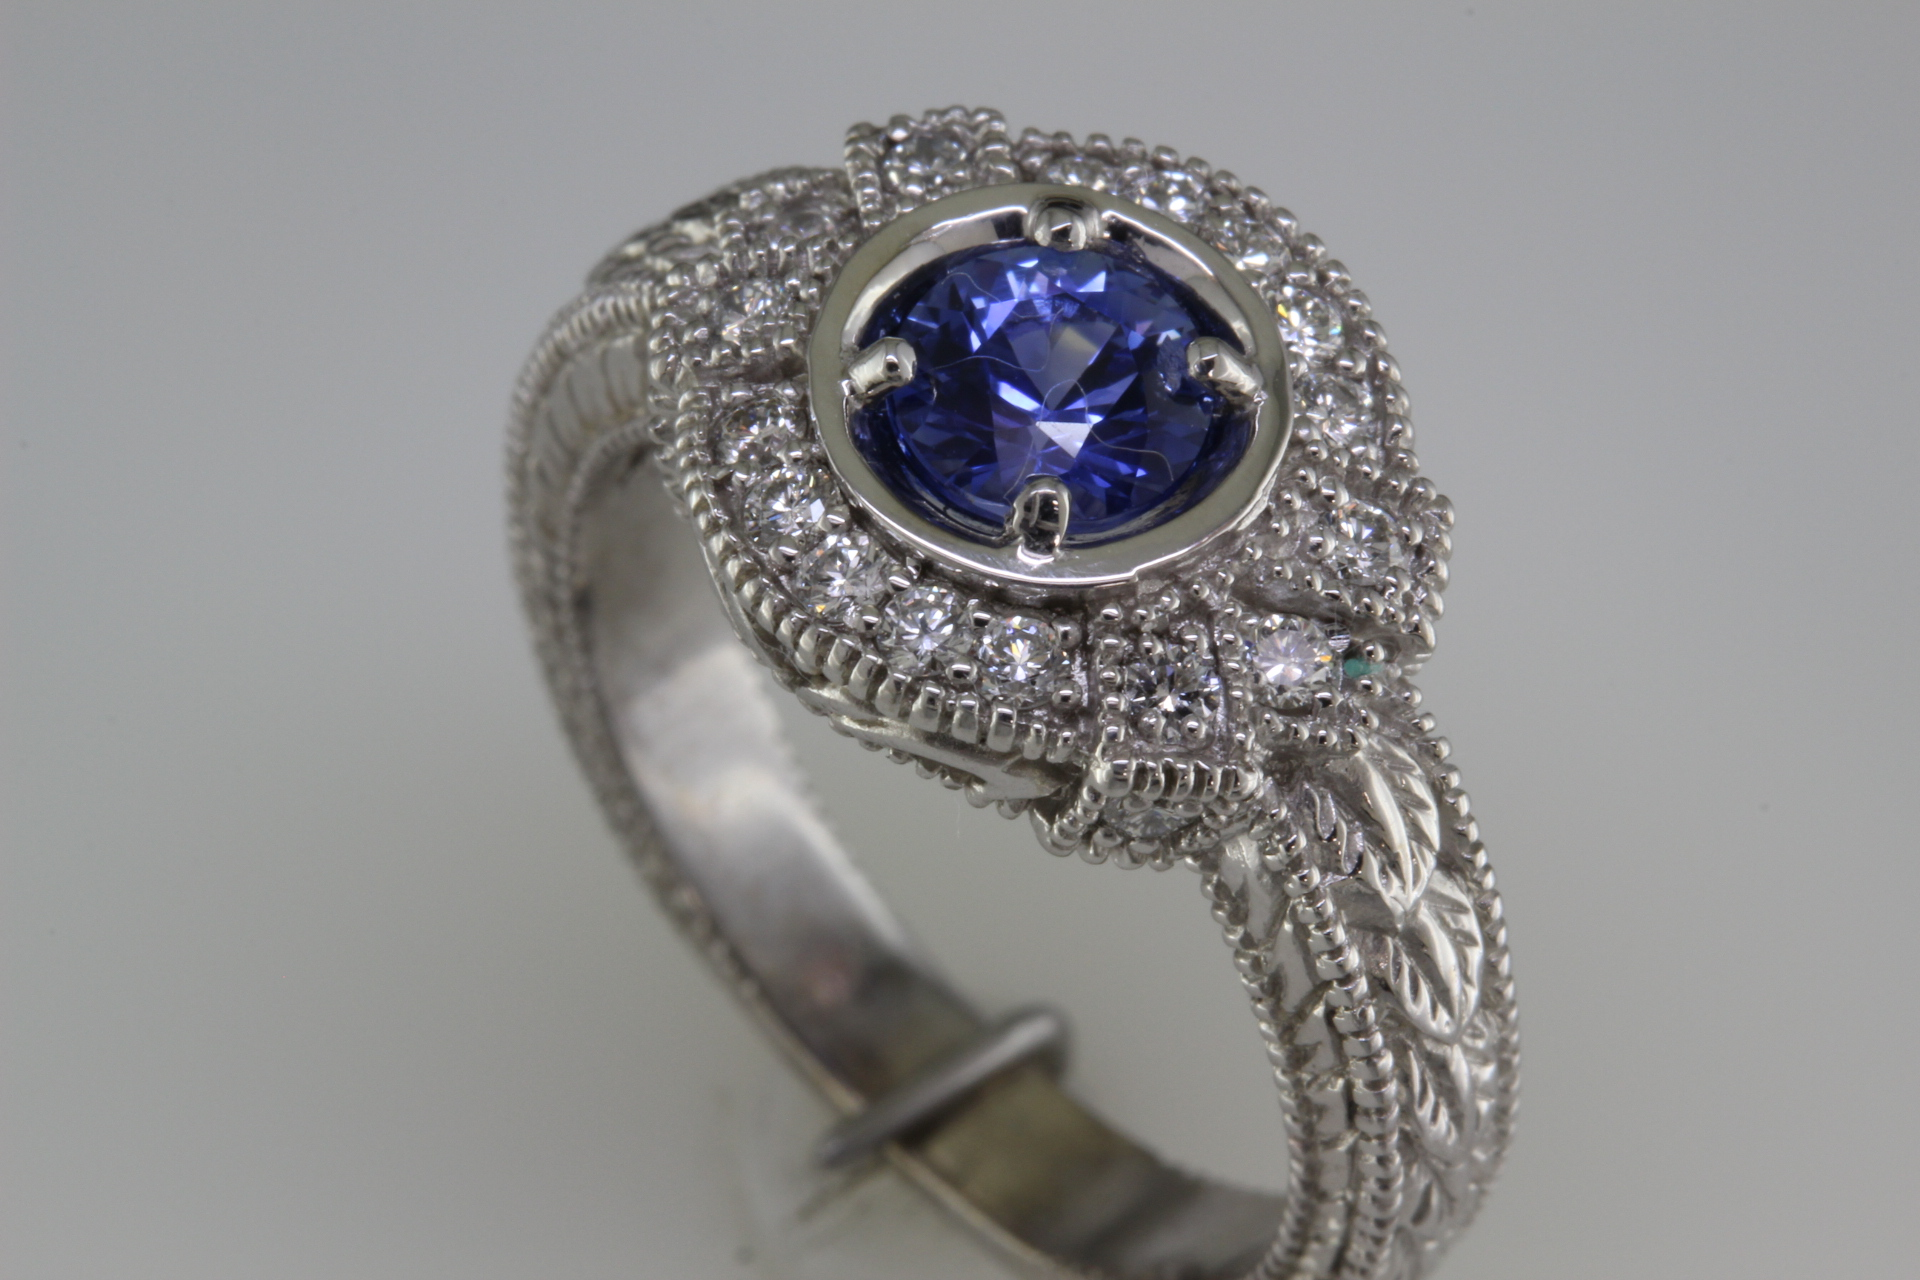 Antique style Sapphire ring